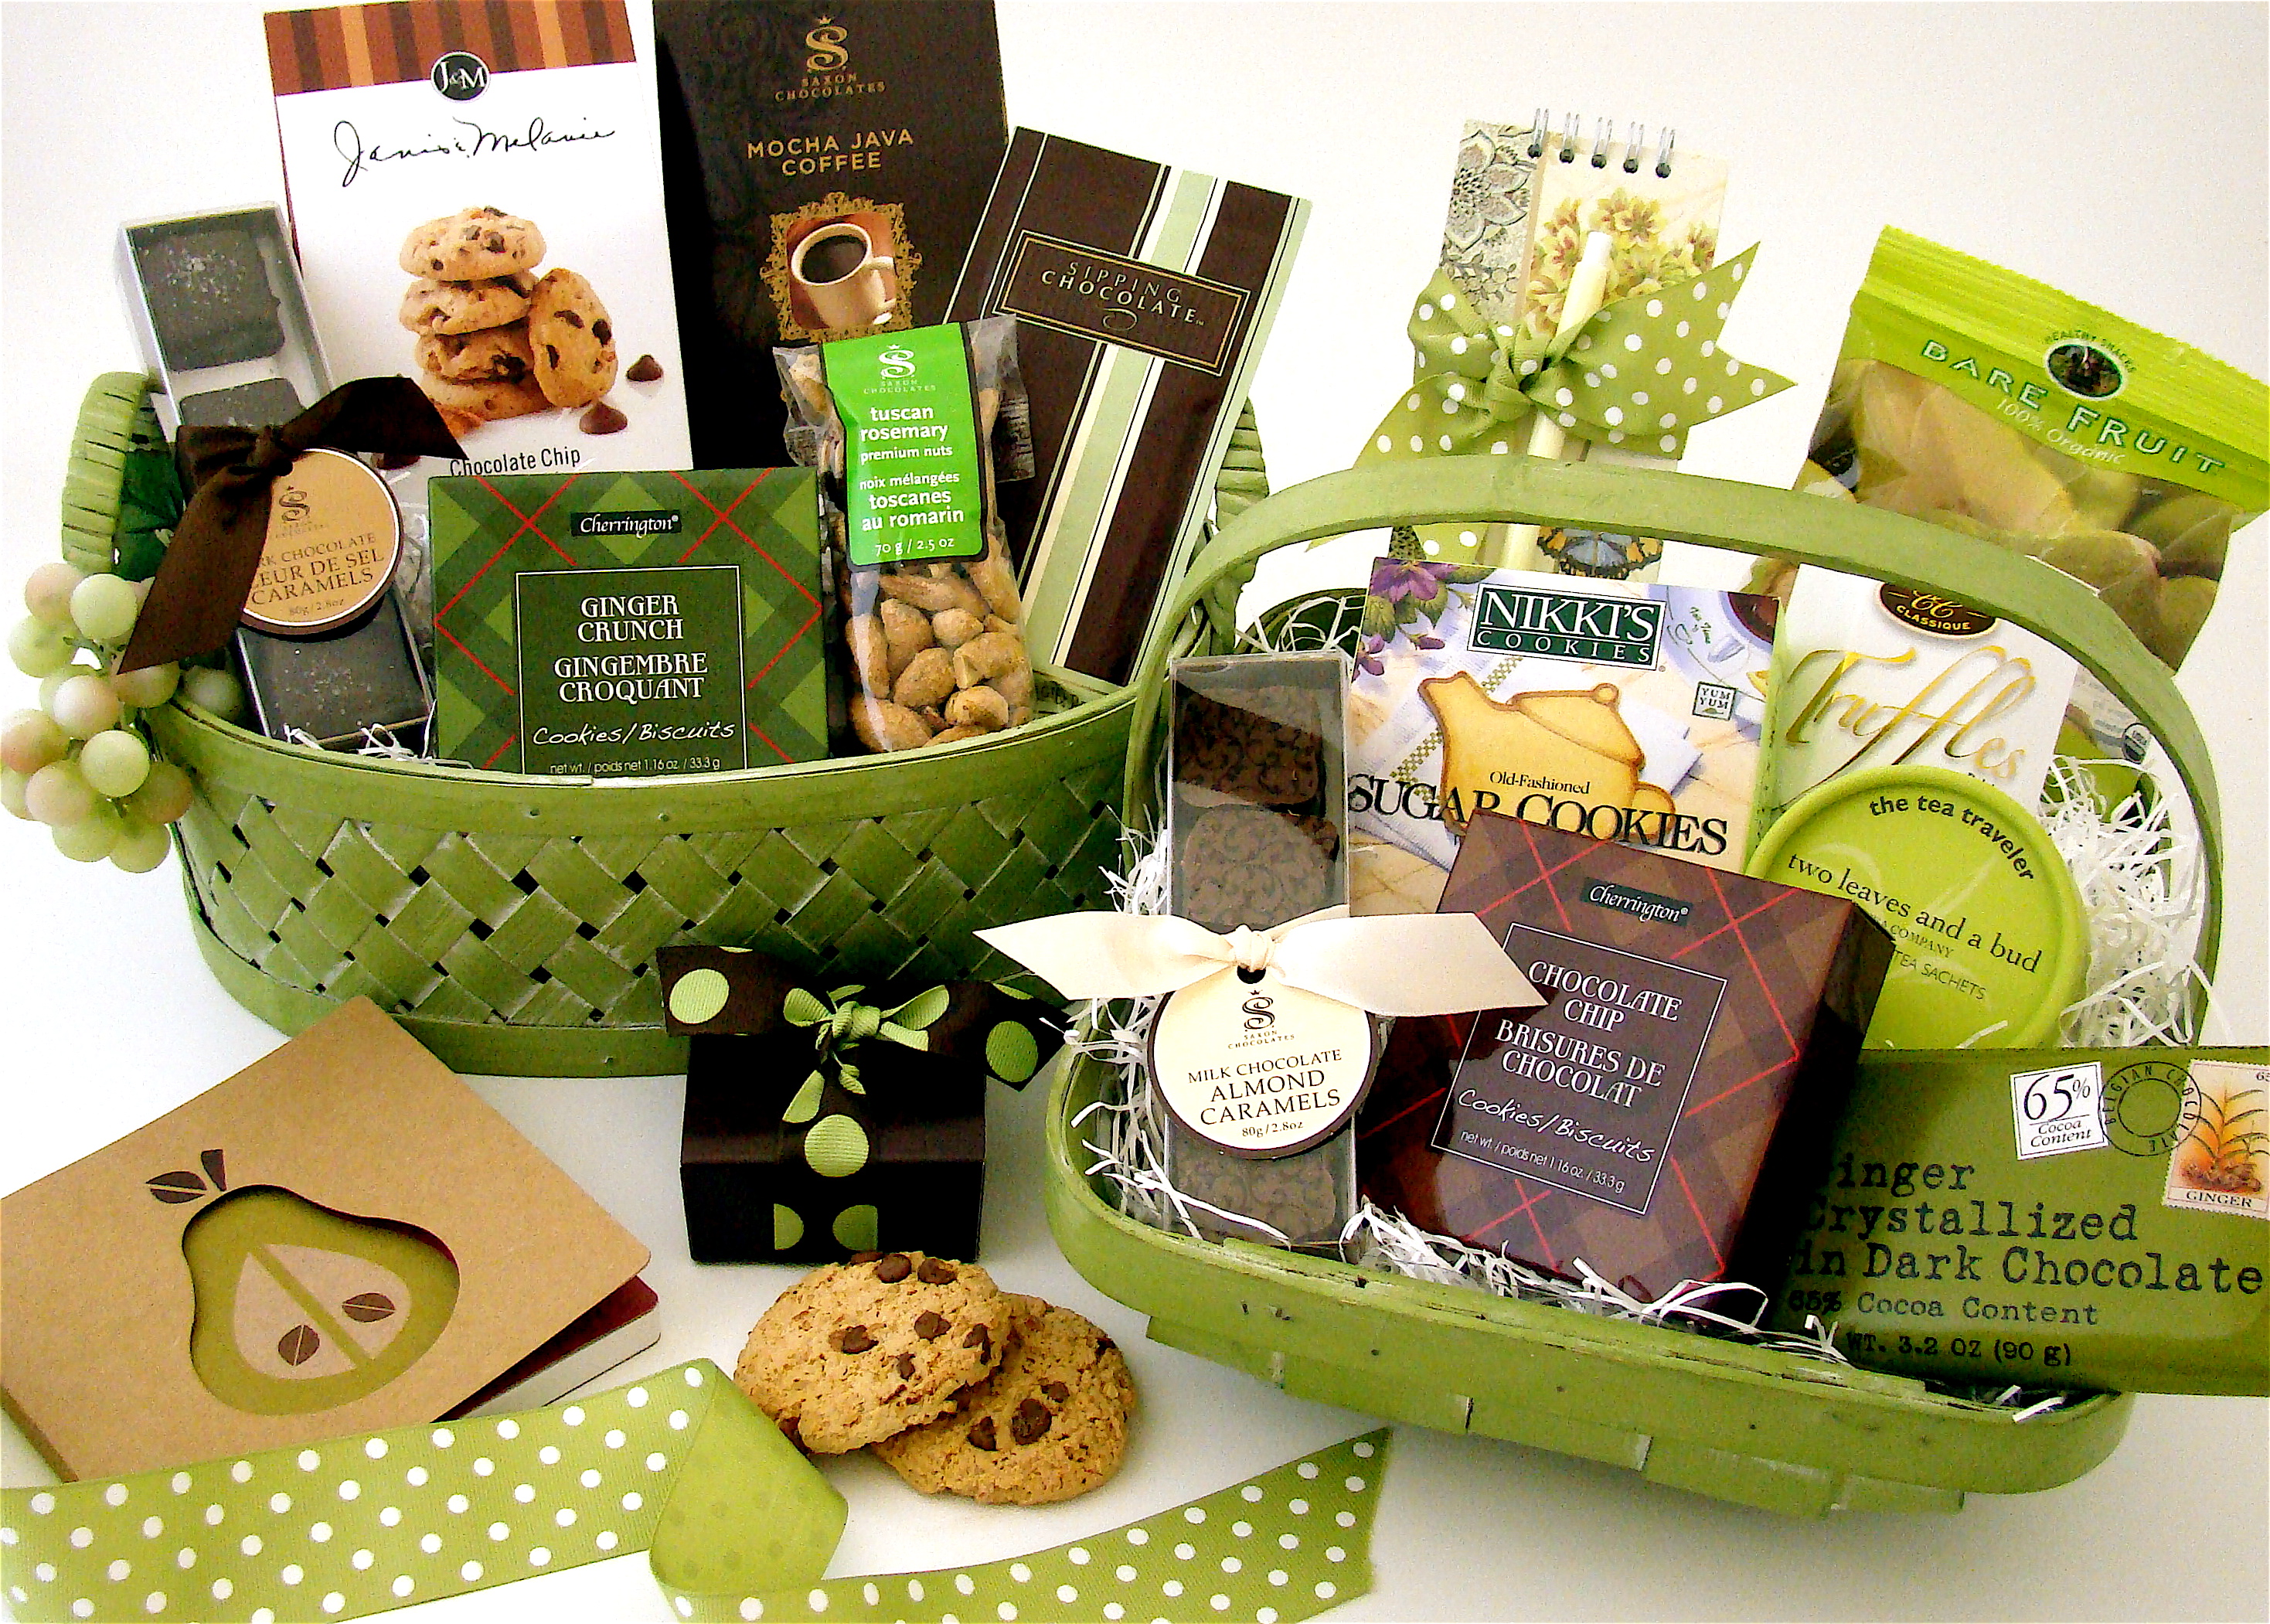 Homemade gift baskets make a special one and fill with your show solutioingenieria Image collections